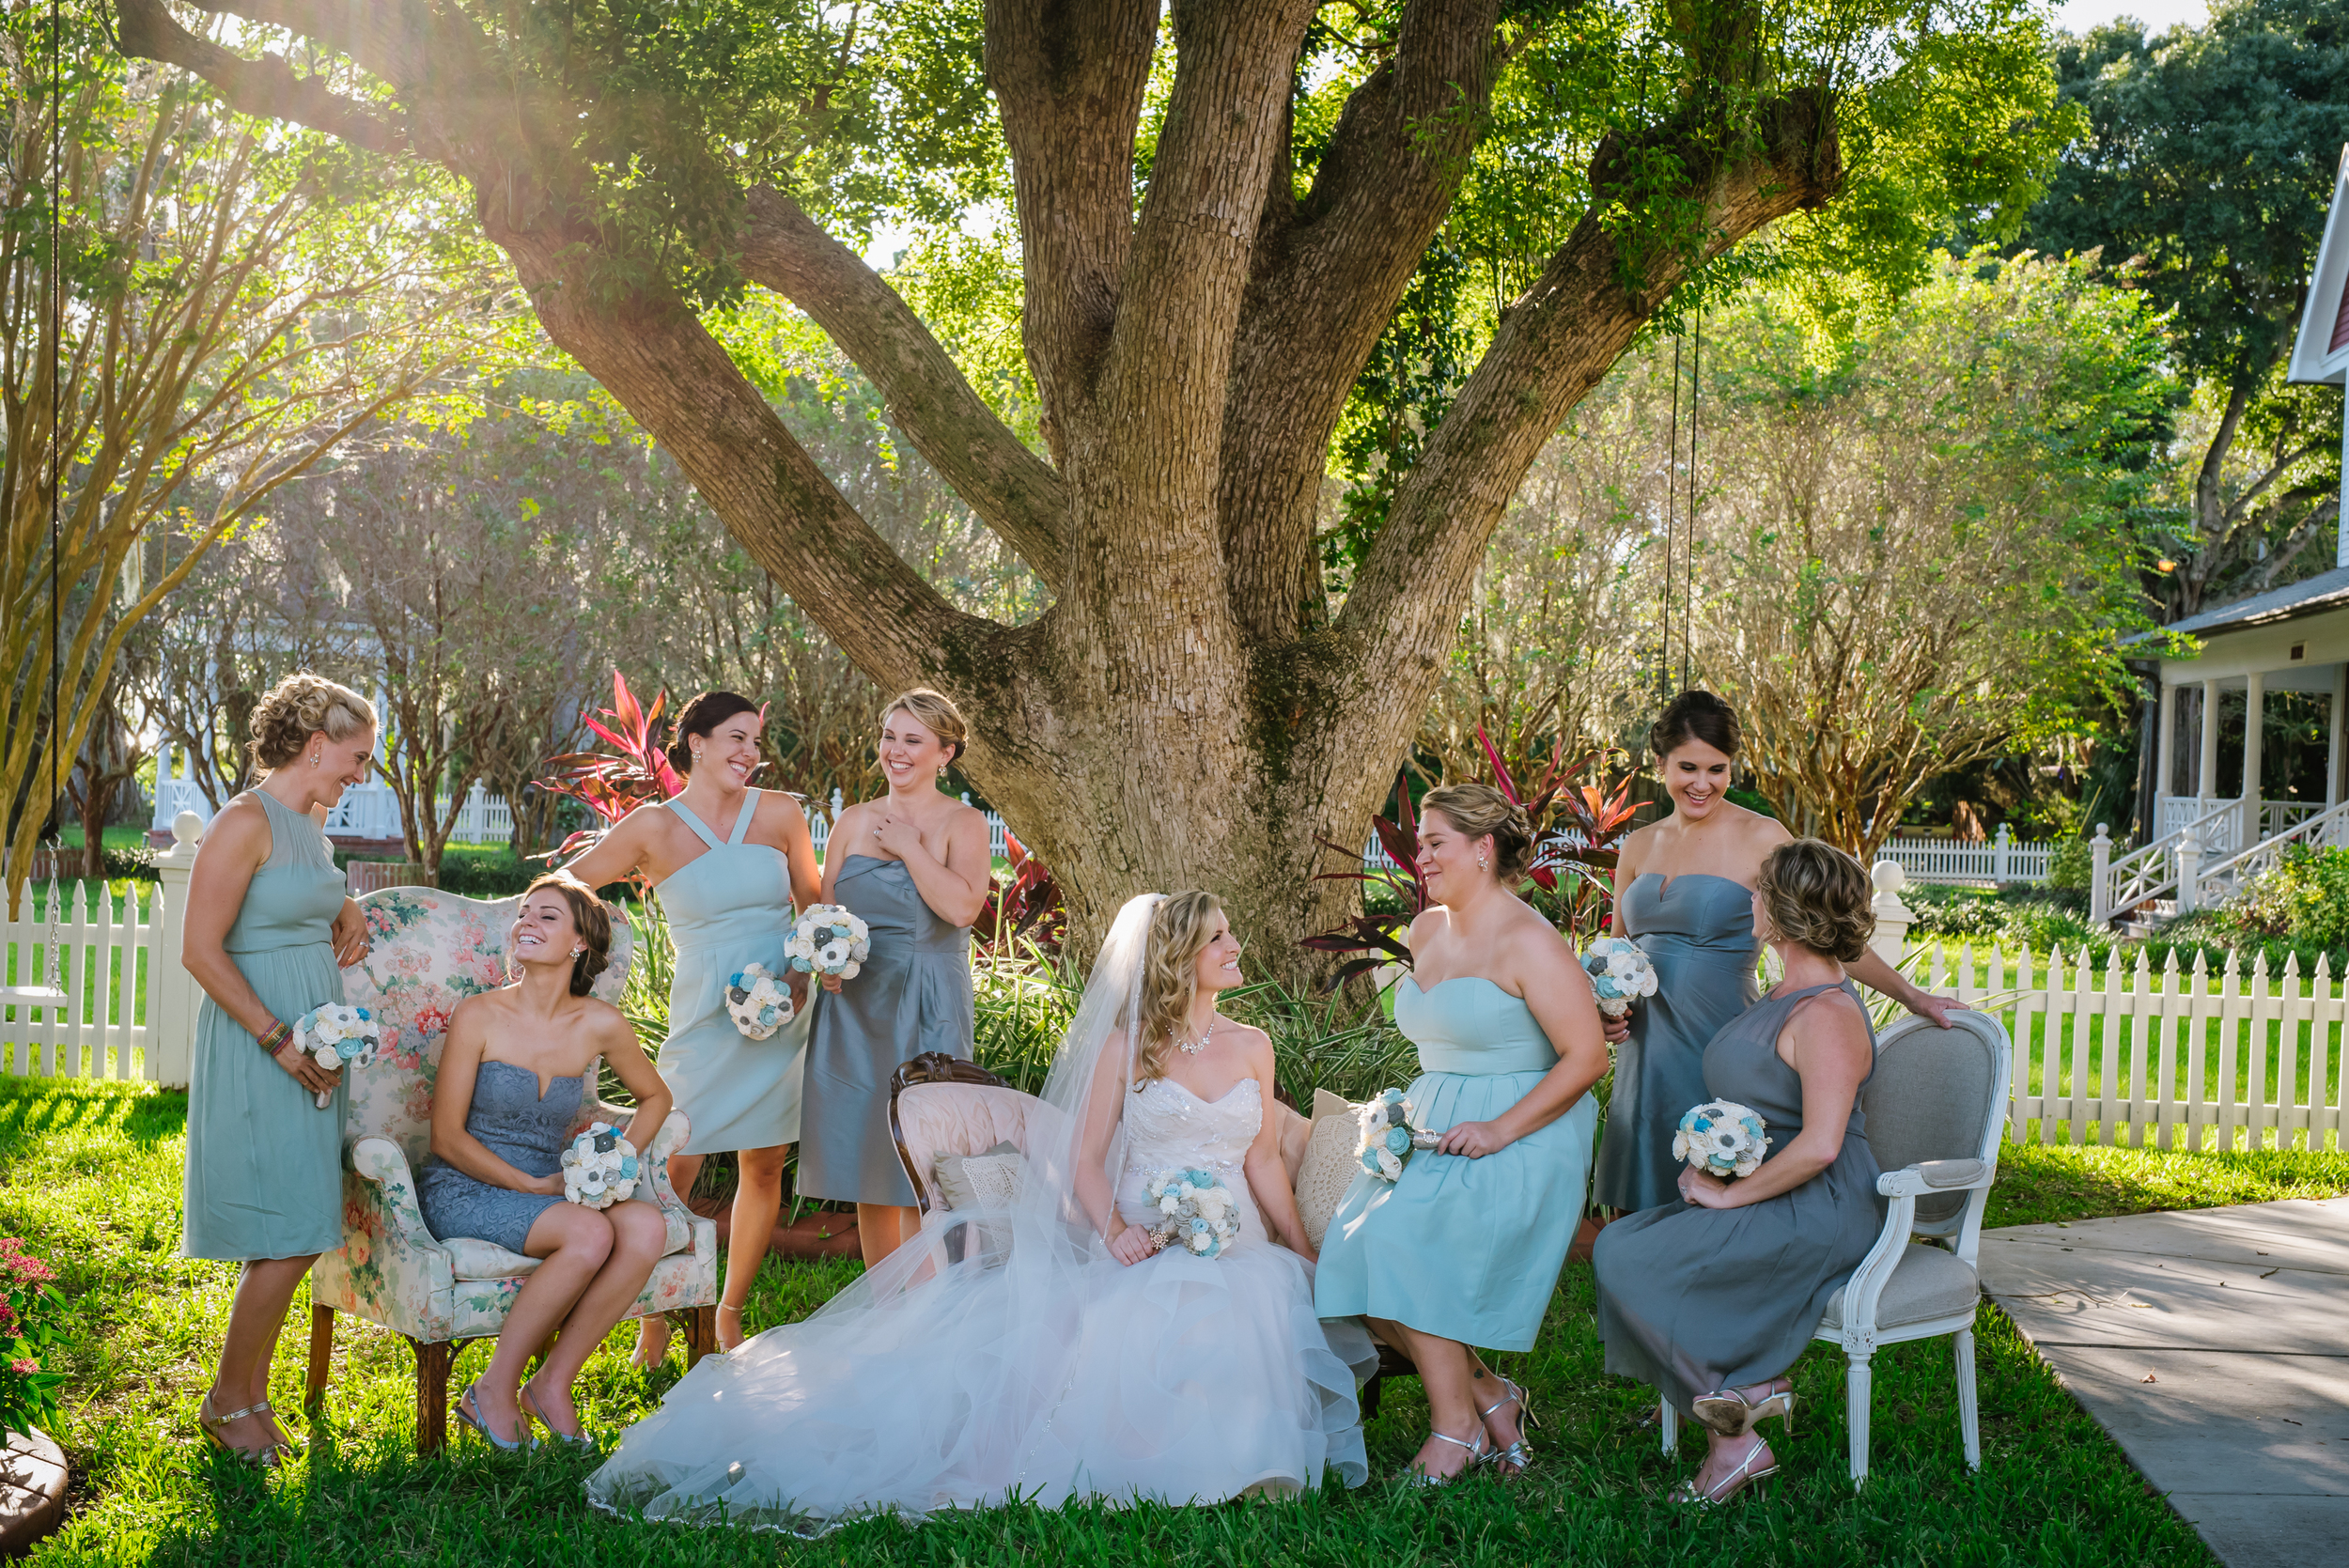 Megan and Derek had a perfectly blush and vintage wedding day surrounded by an awesome crew! I loved having fun with the girls and all of the prettiness!!